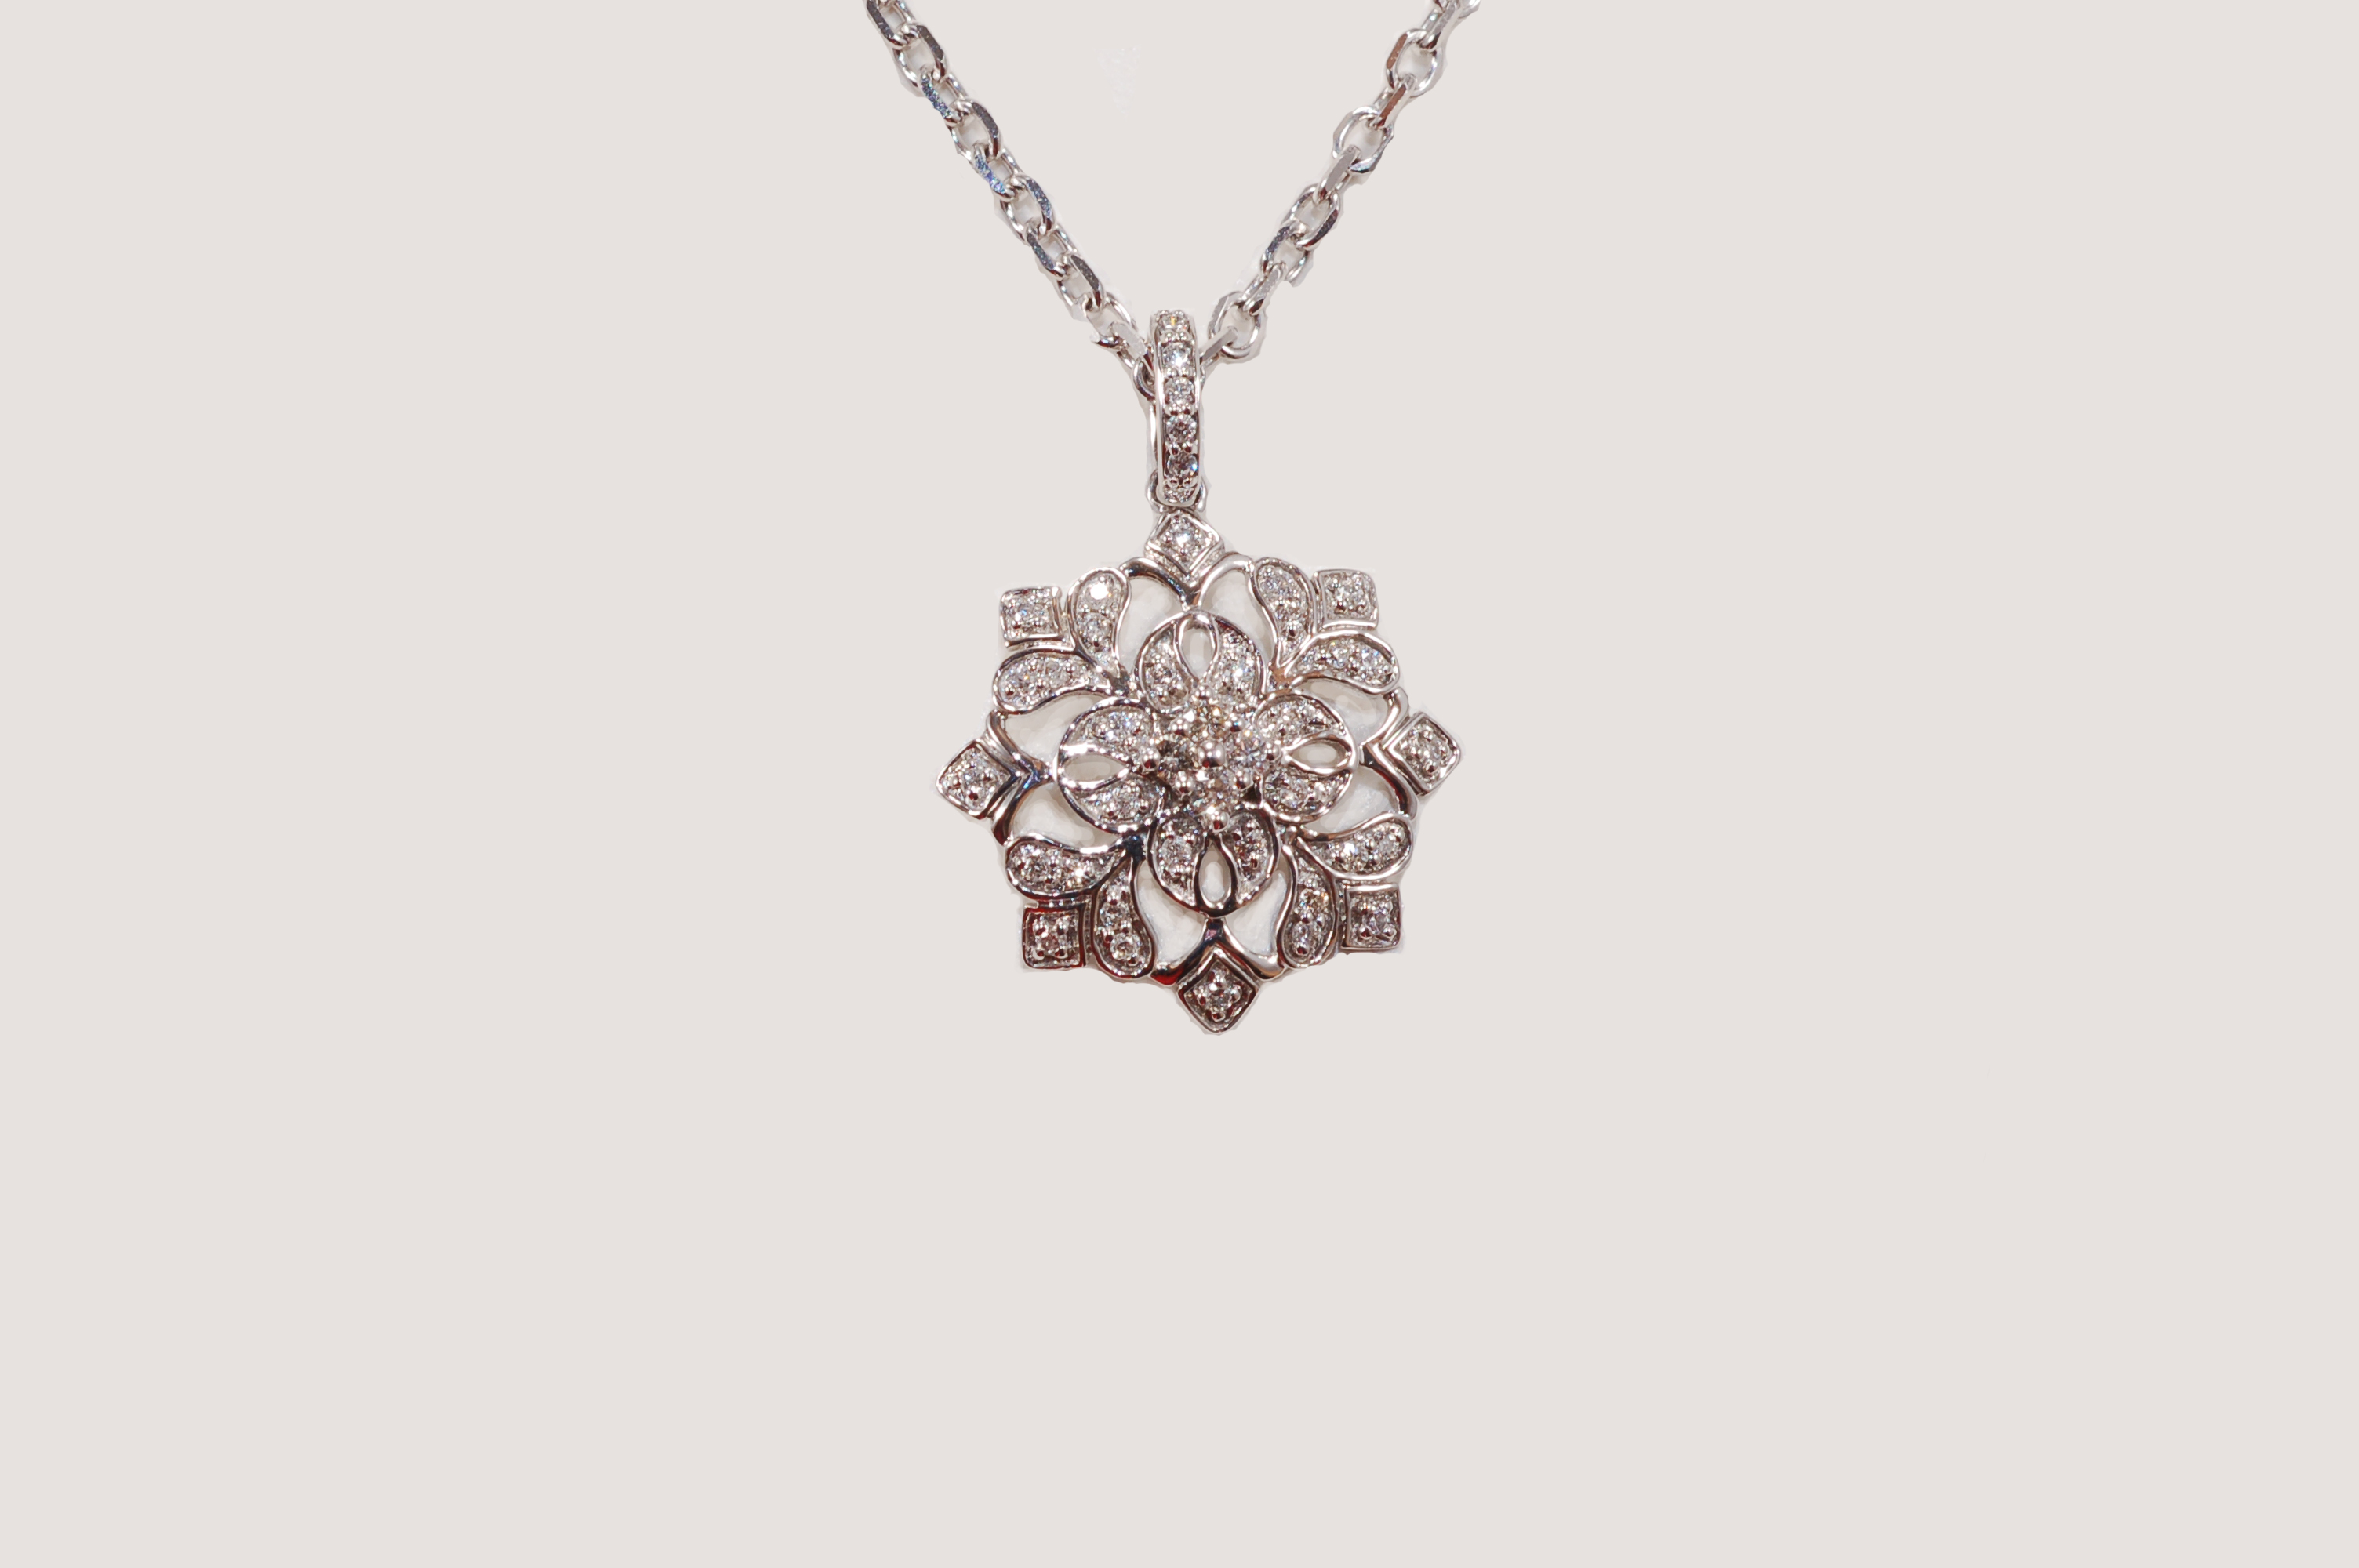 buyjools cubic com online johnlewis at zirconia pdp jenny jools rsp main by necklace snowflake silver brown pendant